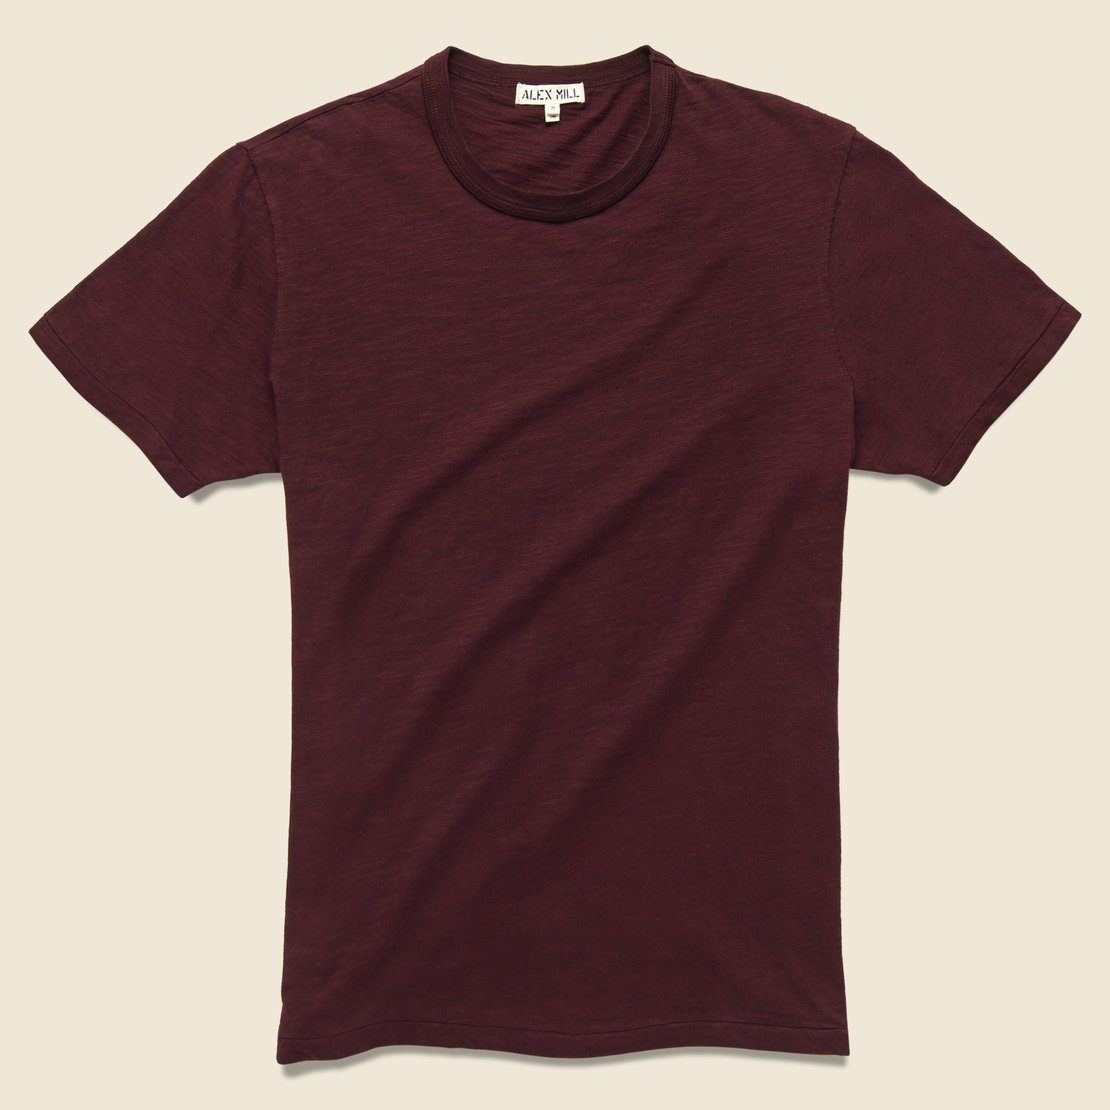 Alex Mill New Standard Crew Tee - Wine